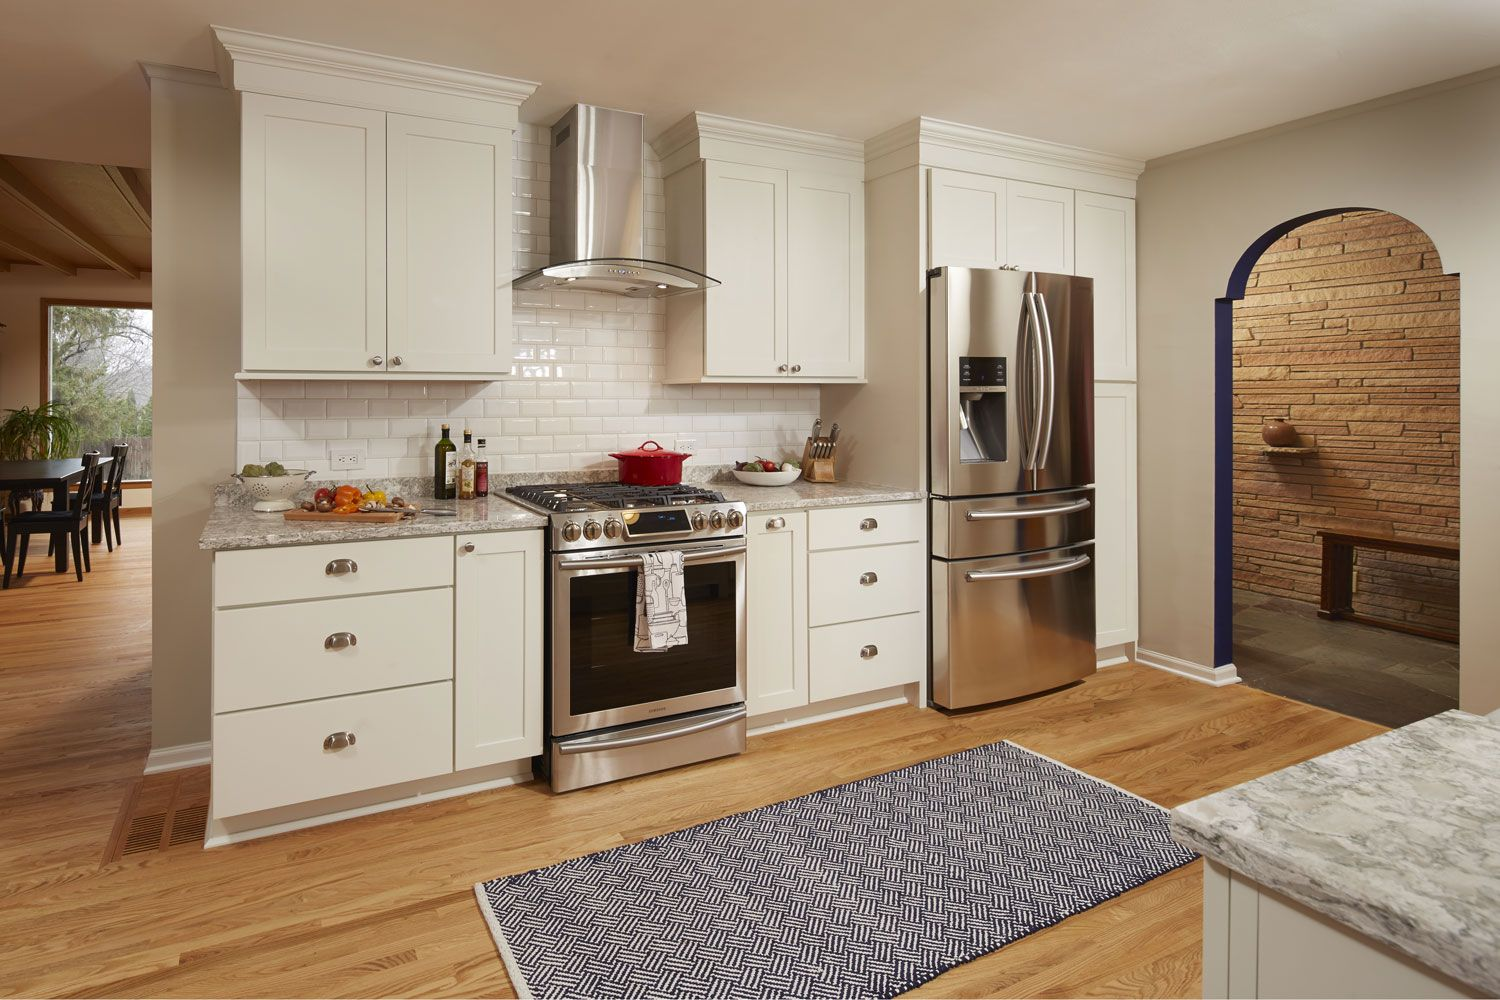 This Efficient Kitchen Design Uses CliqStudios Rockford Cabinets In Painted  White Finish. Thereu0027s Lots Of Easy To Reach Storage With Deep Drawers And A  Tall ...